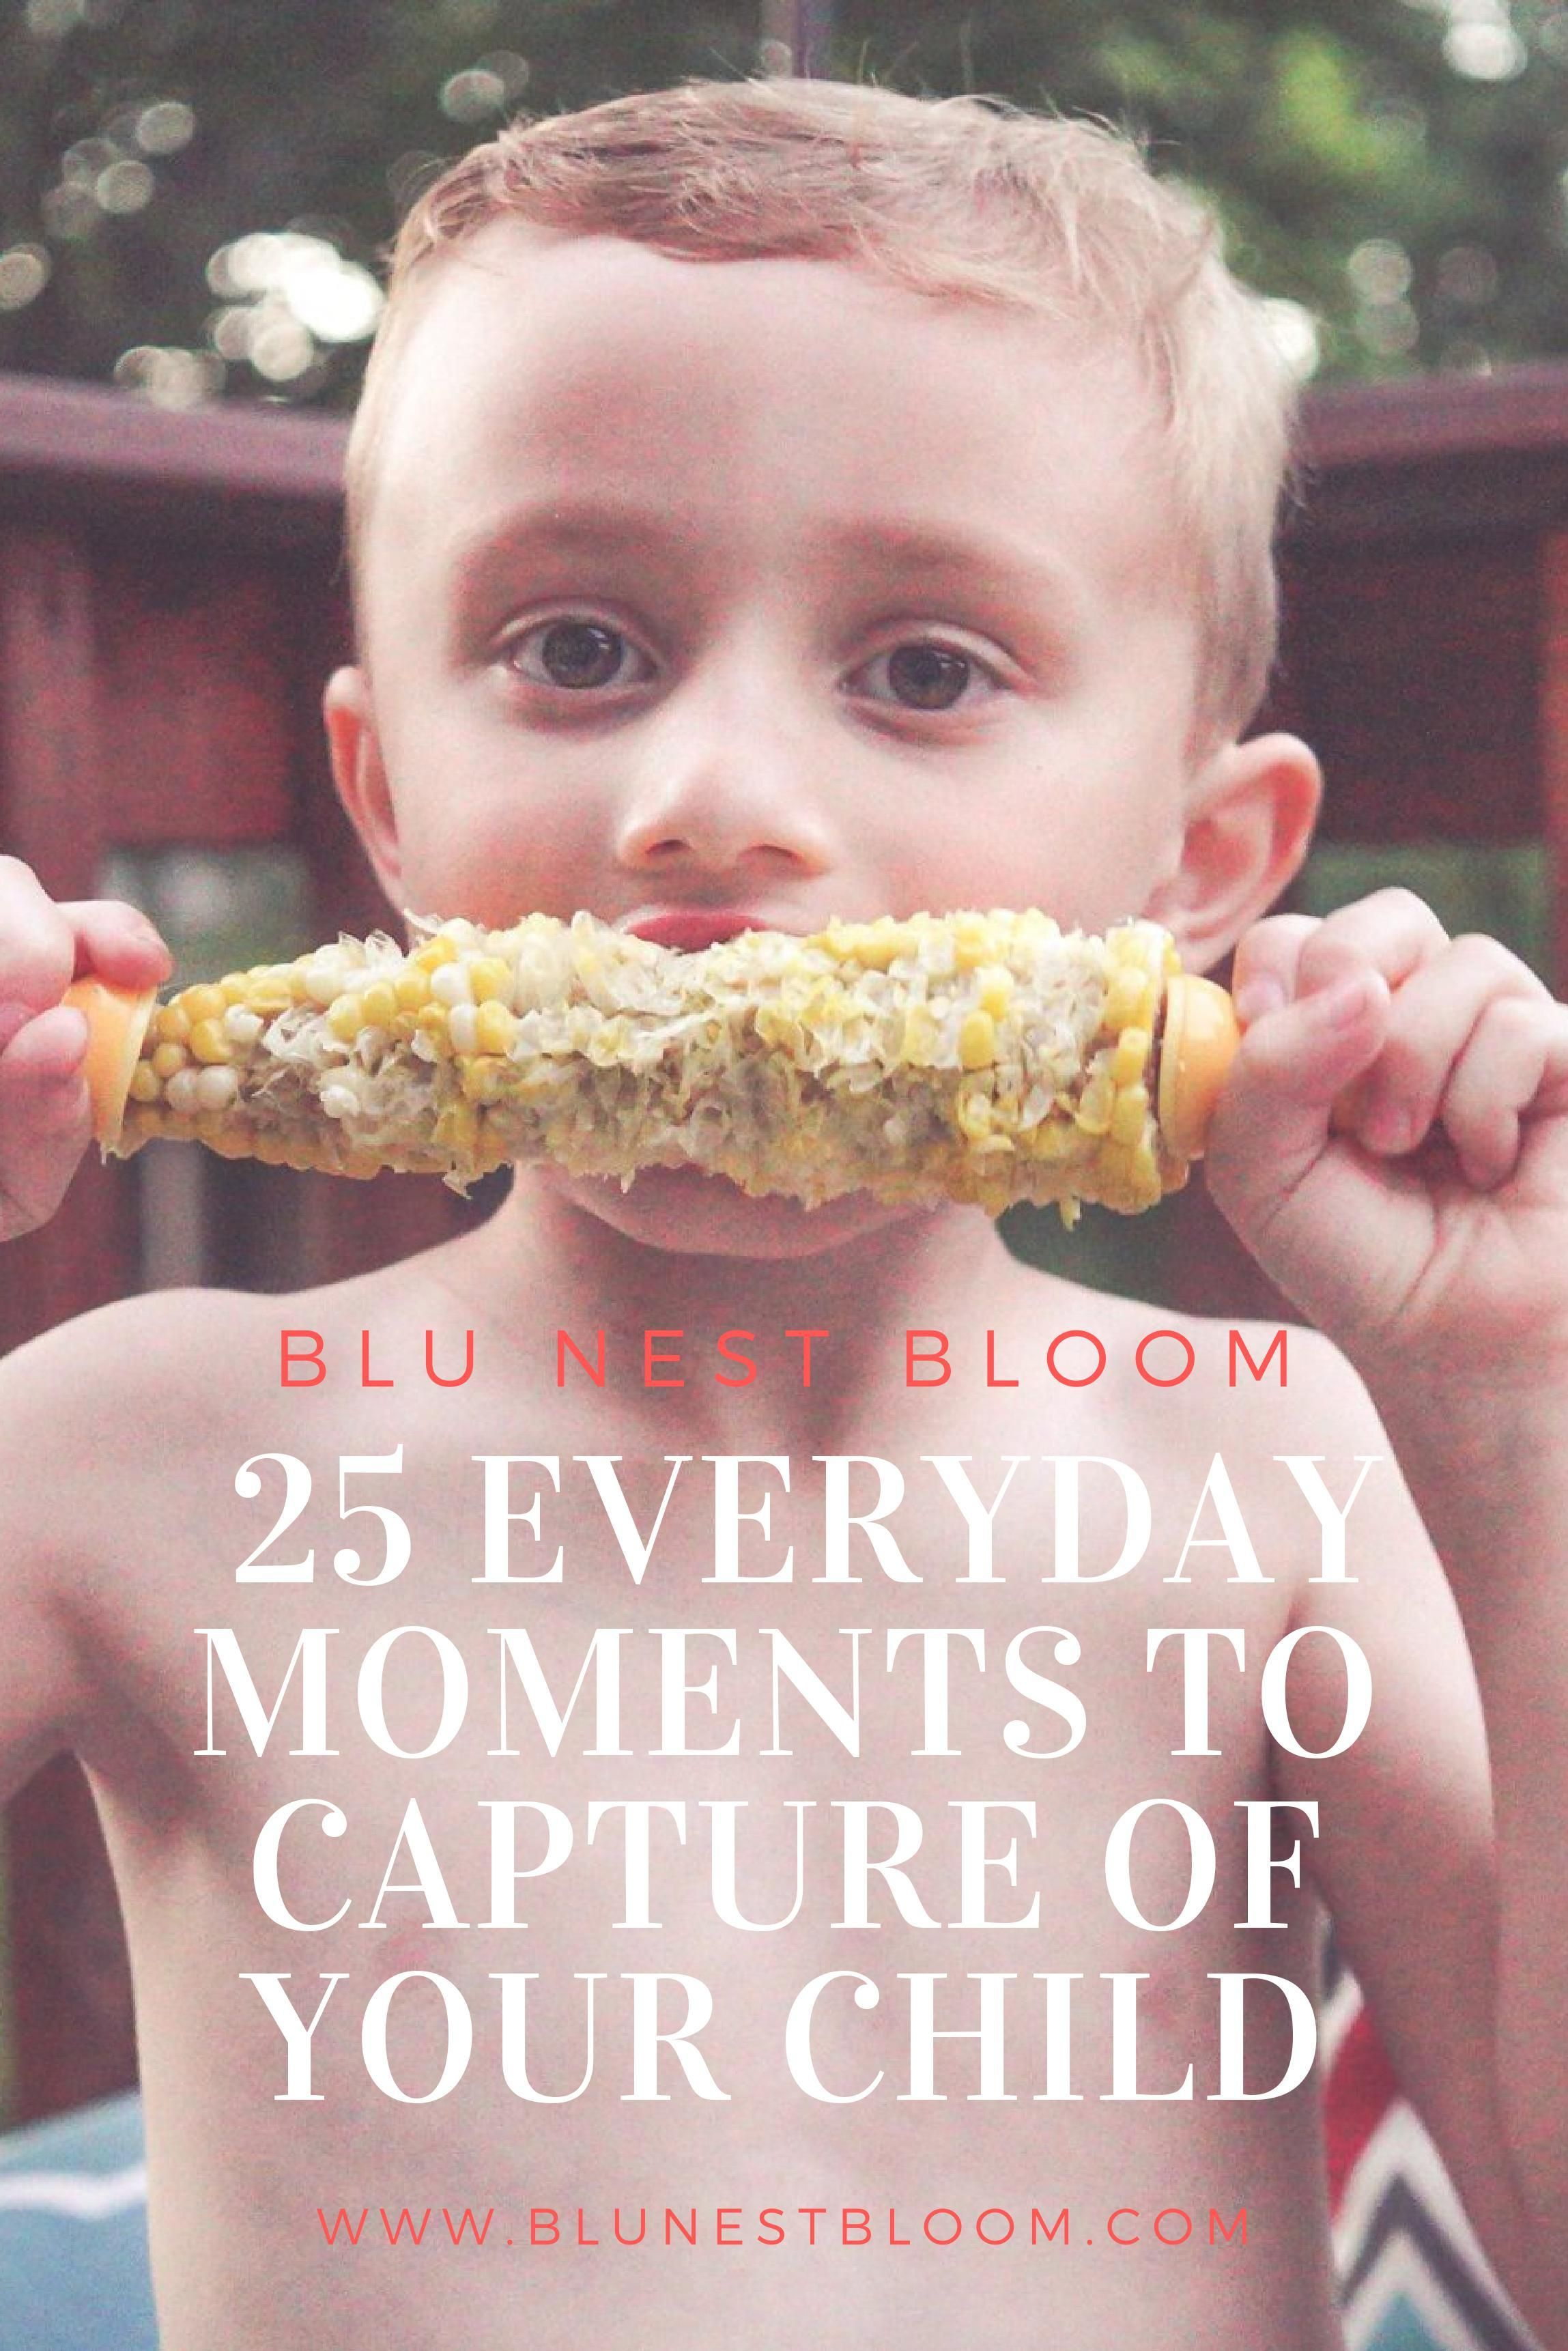 Do you love documenting the lives of your children? If so, don't forget to document the moments that make up a part of your everyday. Here are my top favorite 25 Everyday Moments to Capture of Your Child this year. #momswithcameras #momtographer #documentaryphotography #photographingkids